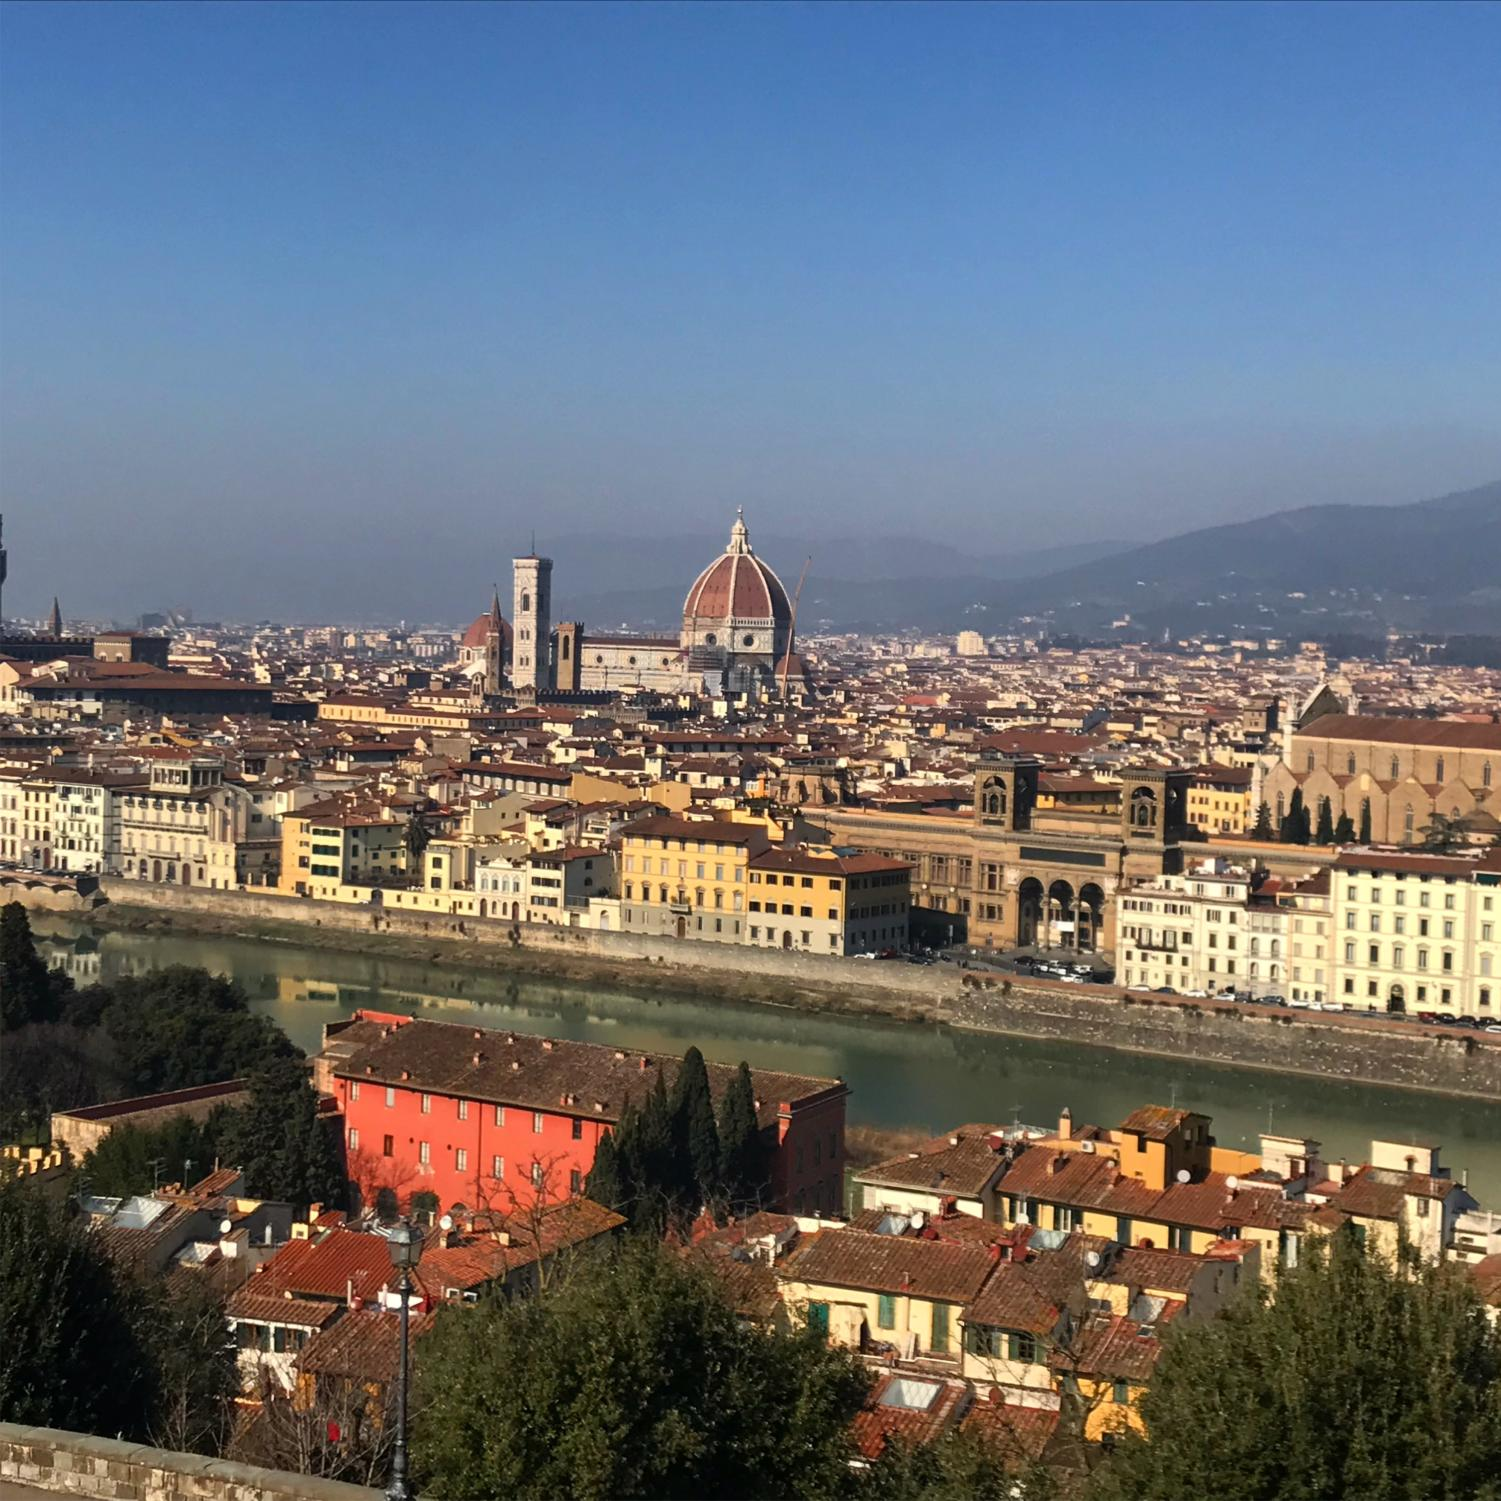 View of Florence, where I lived and studied for four and a half months, from the Piazzale Michelangelo.